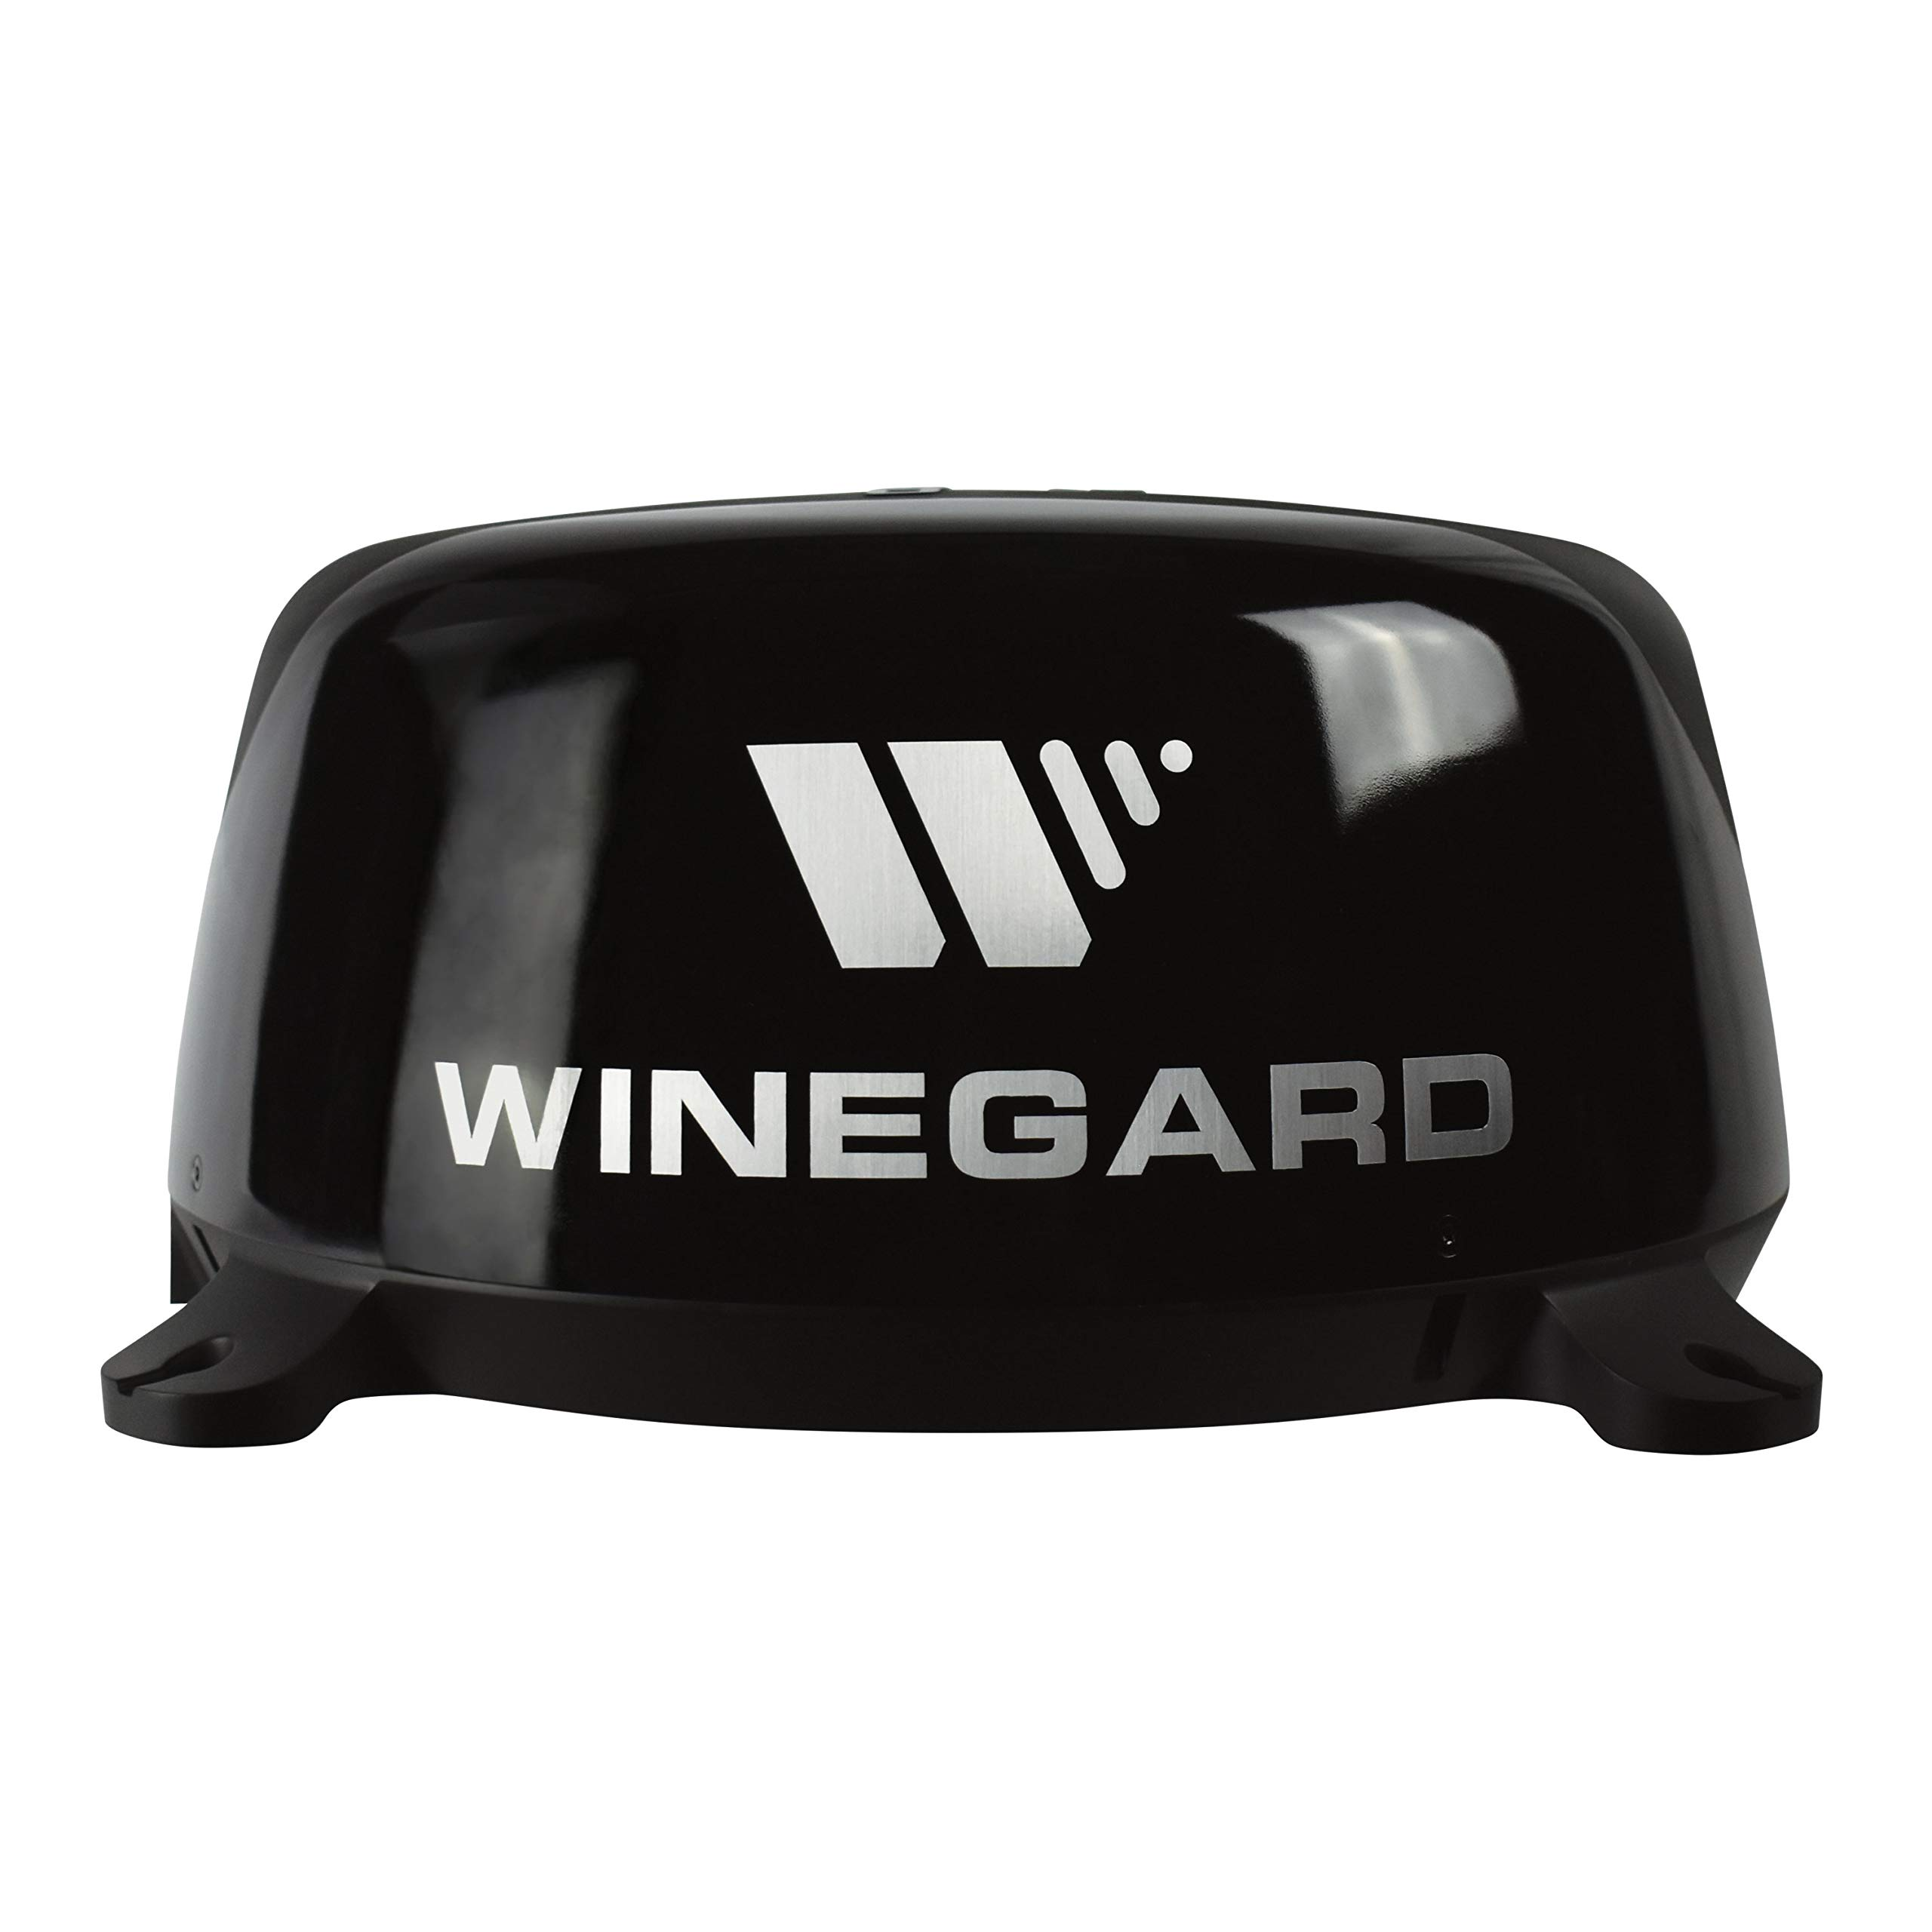 Winegard ConnecT 2.0 4G2 (WF2-435) 4G LTE and Wi-Fi Extender for RVs by Winegard